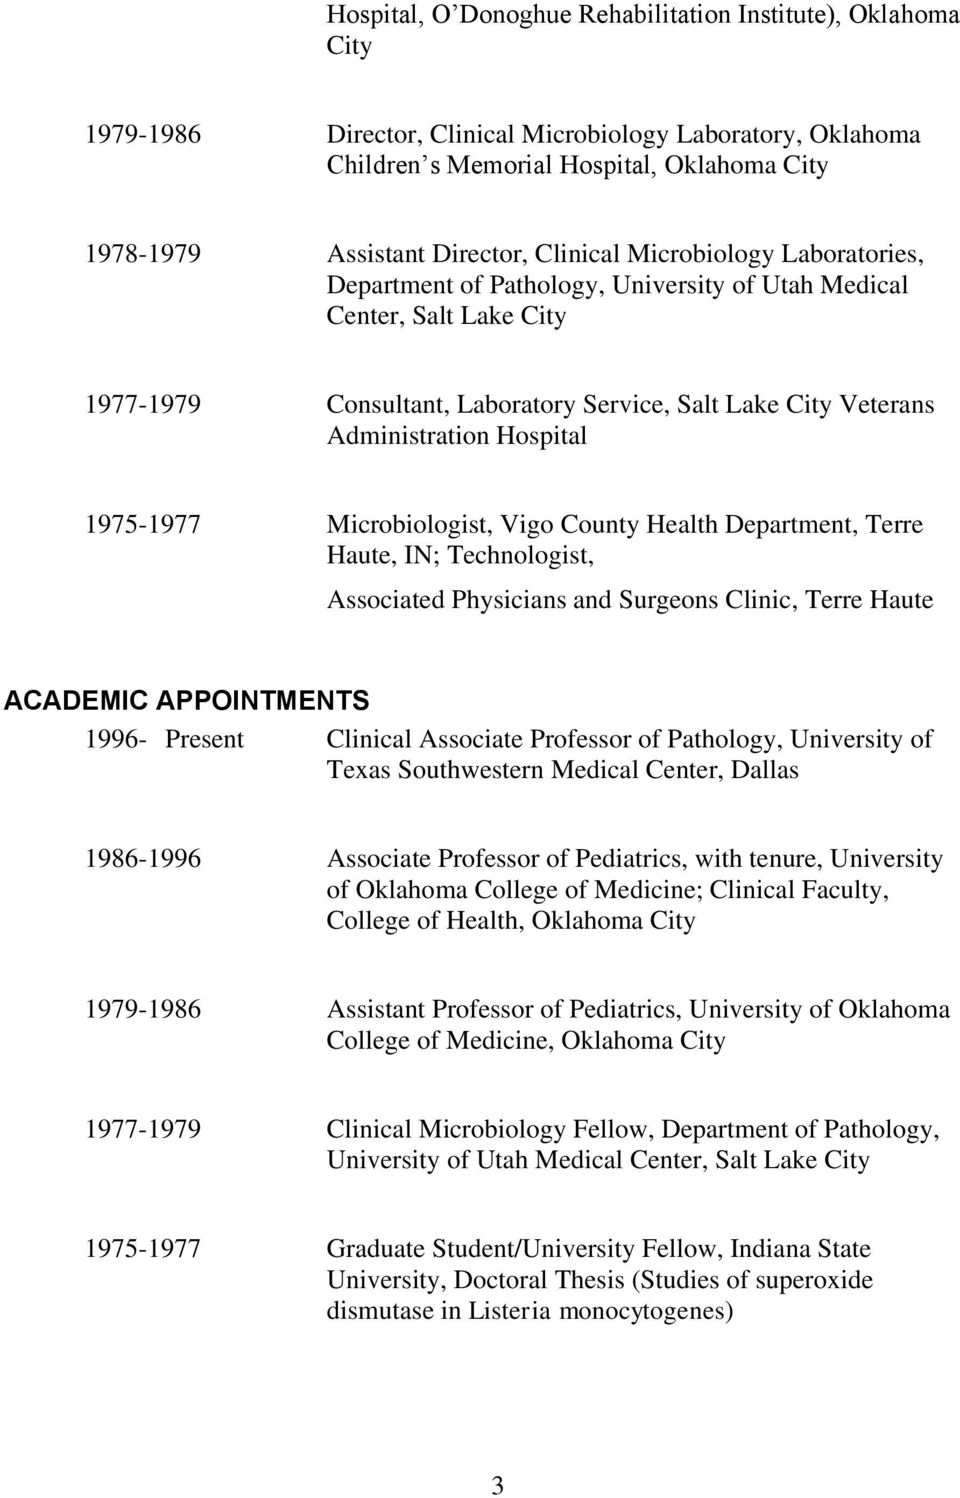 Hospital 1975-1977 Microbiologist, Vigo County Health Department, Terre Haute, IN; Technologist, Associated Physicians and Surgeons Clinic, Terre Haute ACADEMIC APPOINTMENTS 1996- Present Clinical